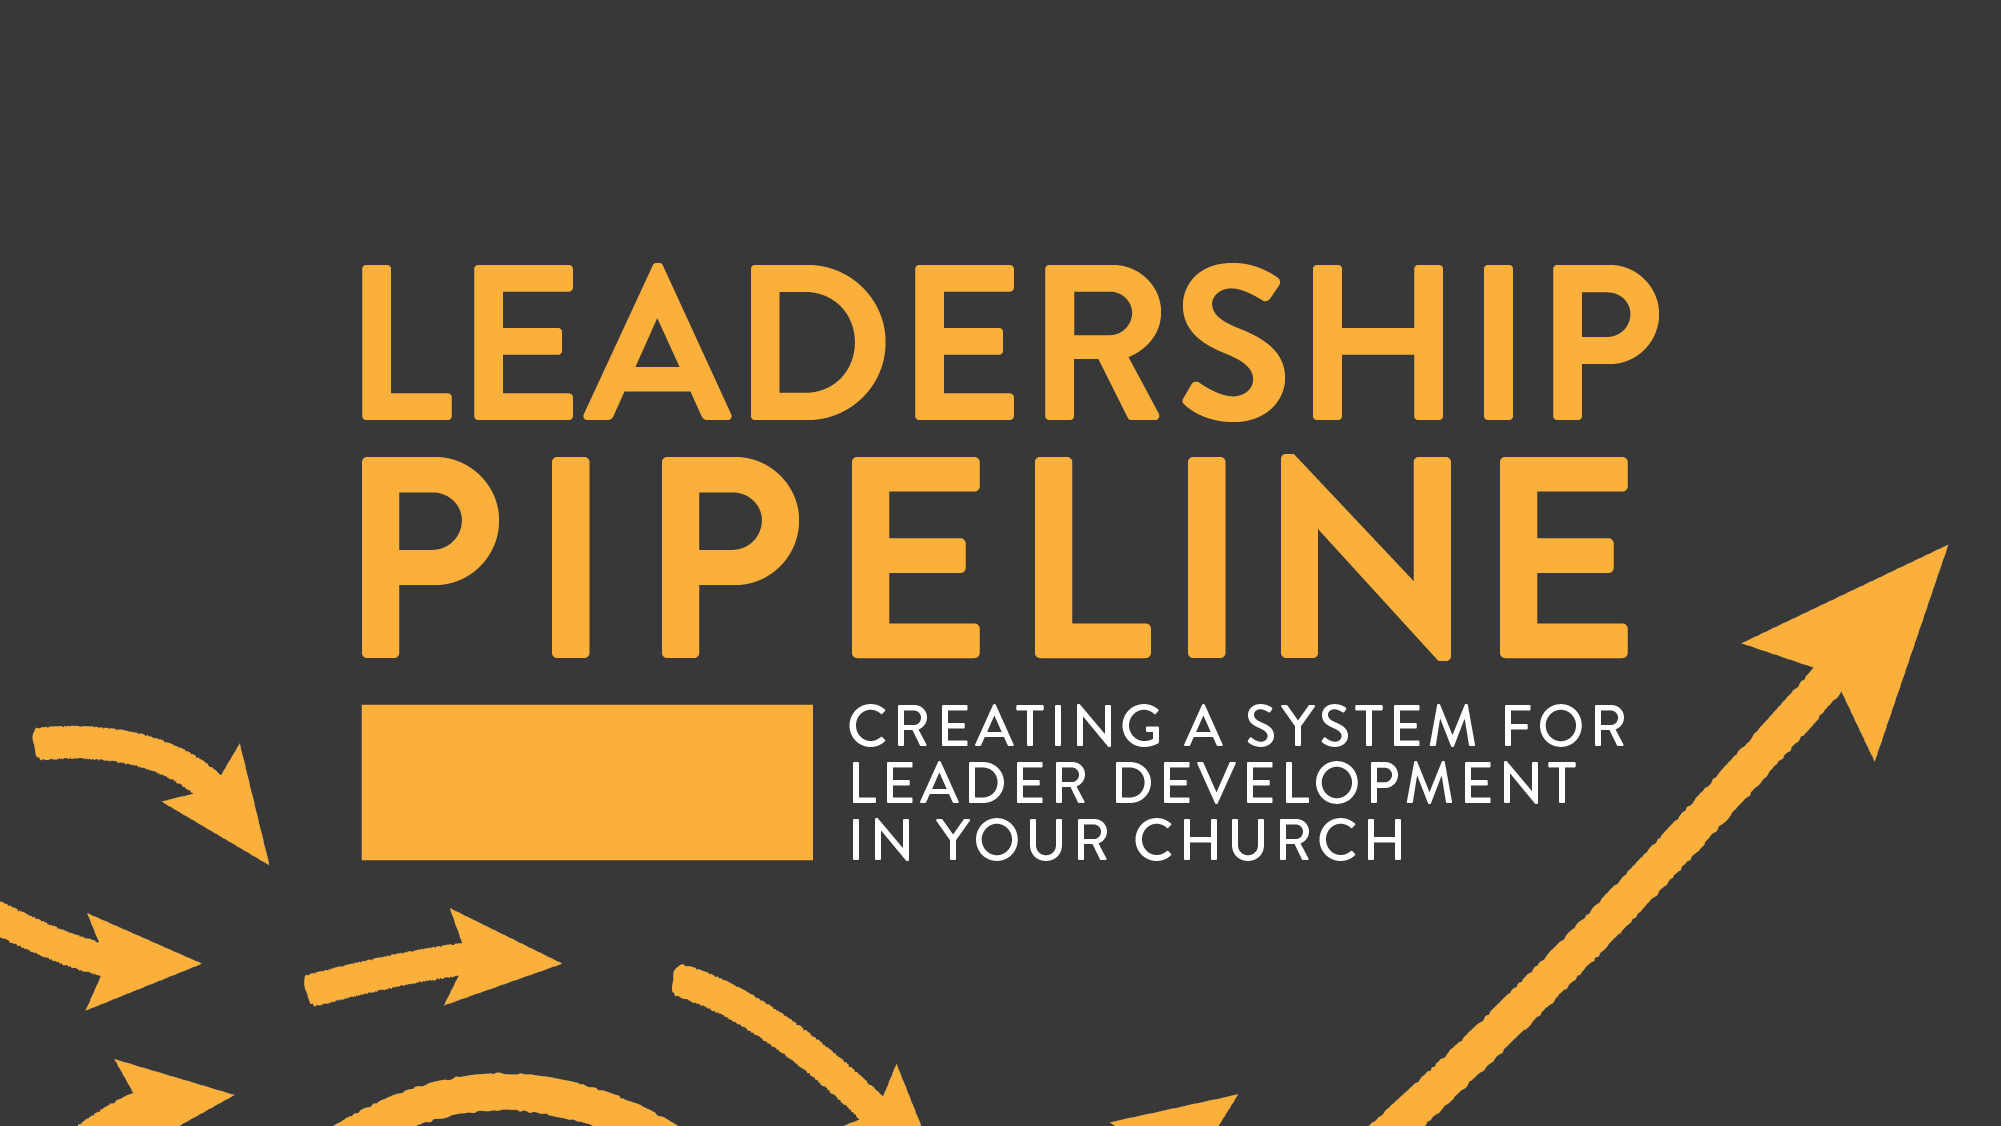 Create A System For Leader Development